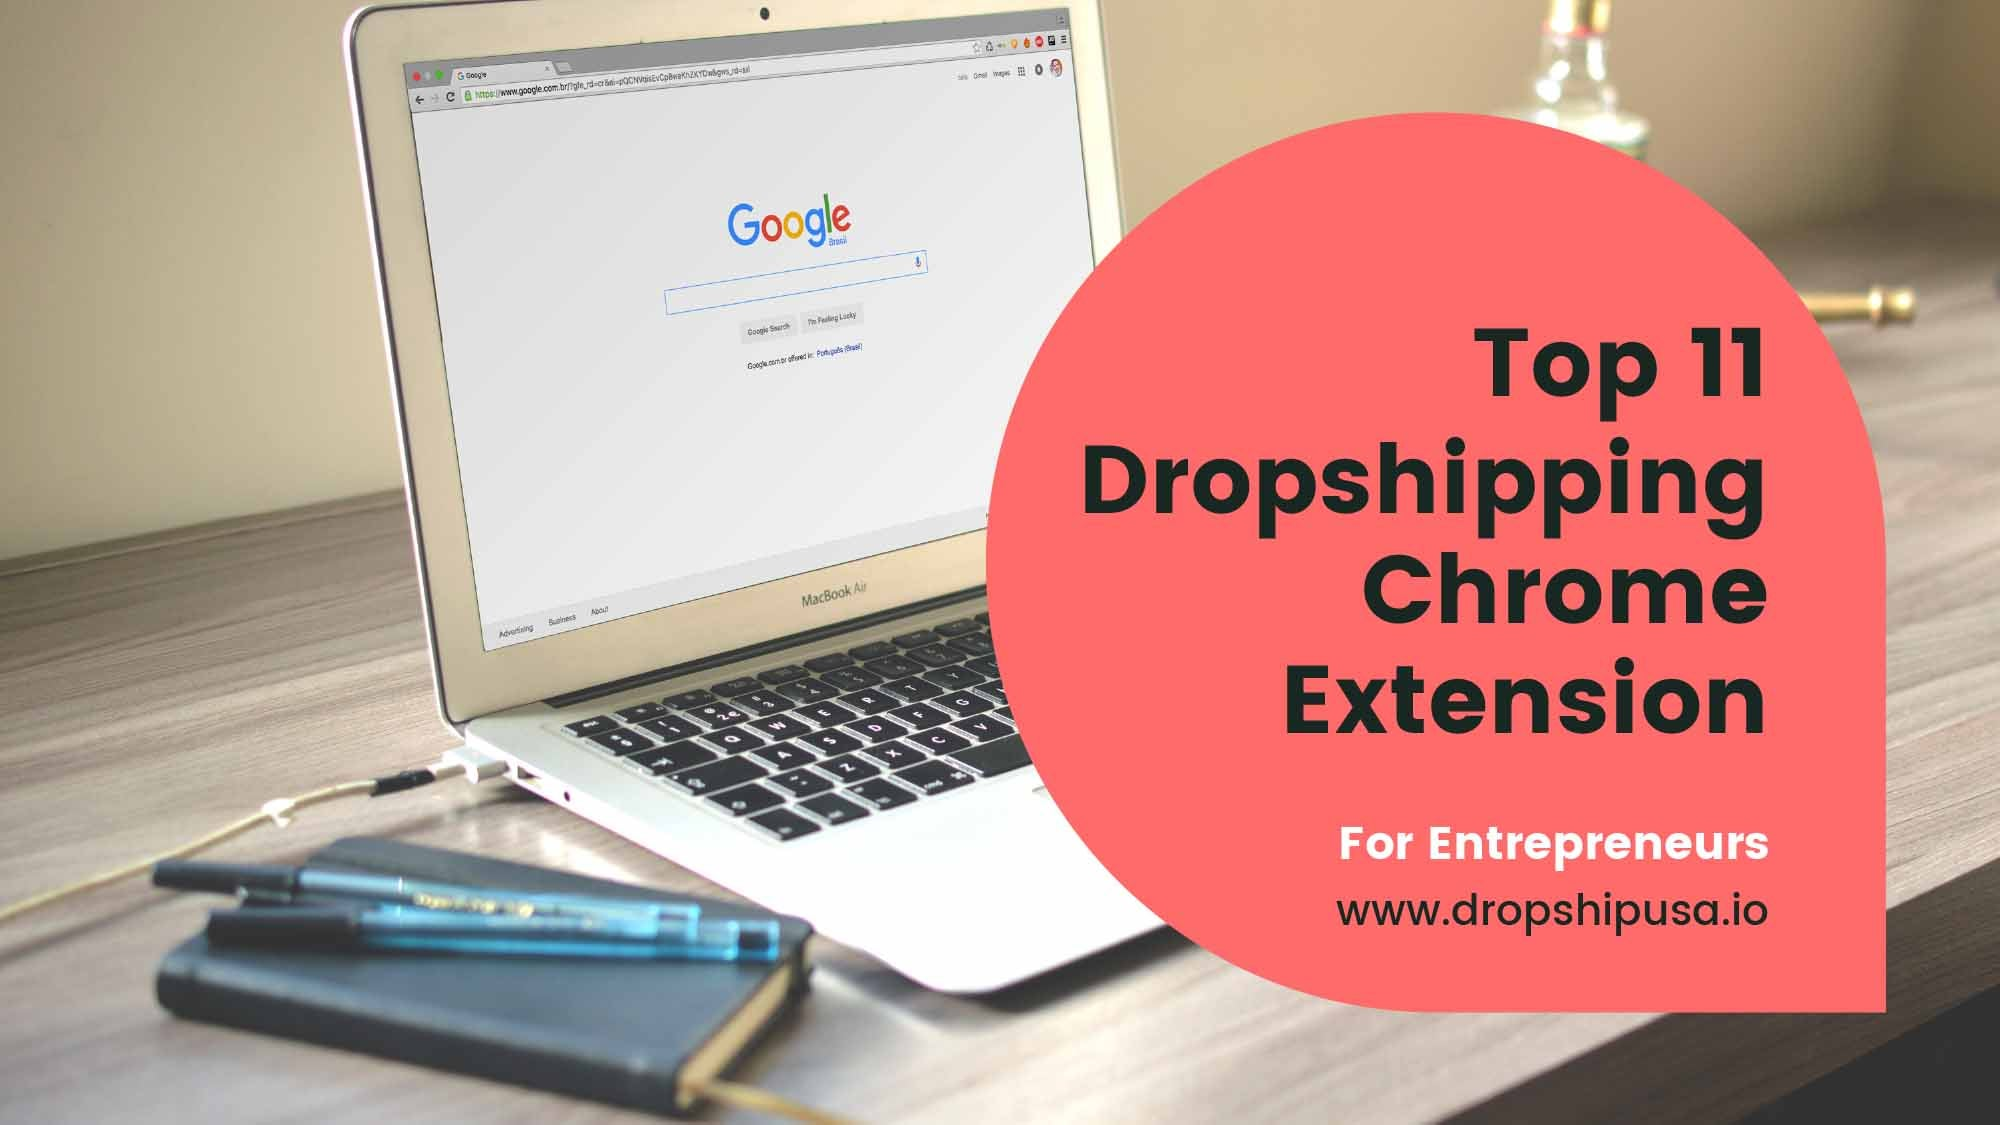 11 Must-Have Chrome Extension for Dropshipping in 2021